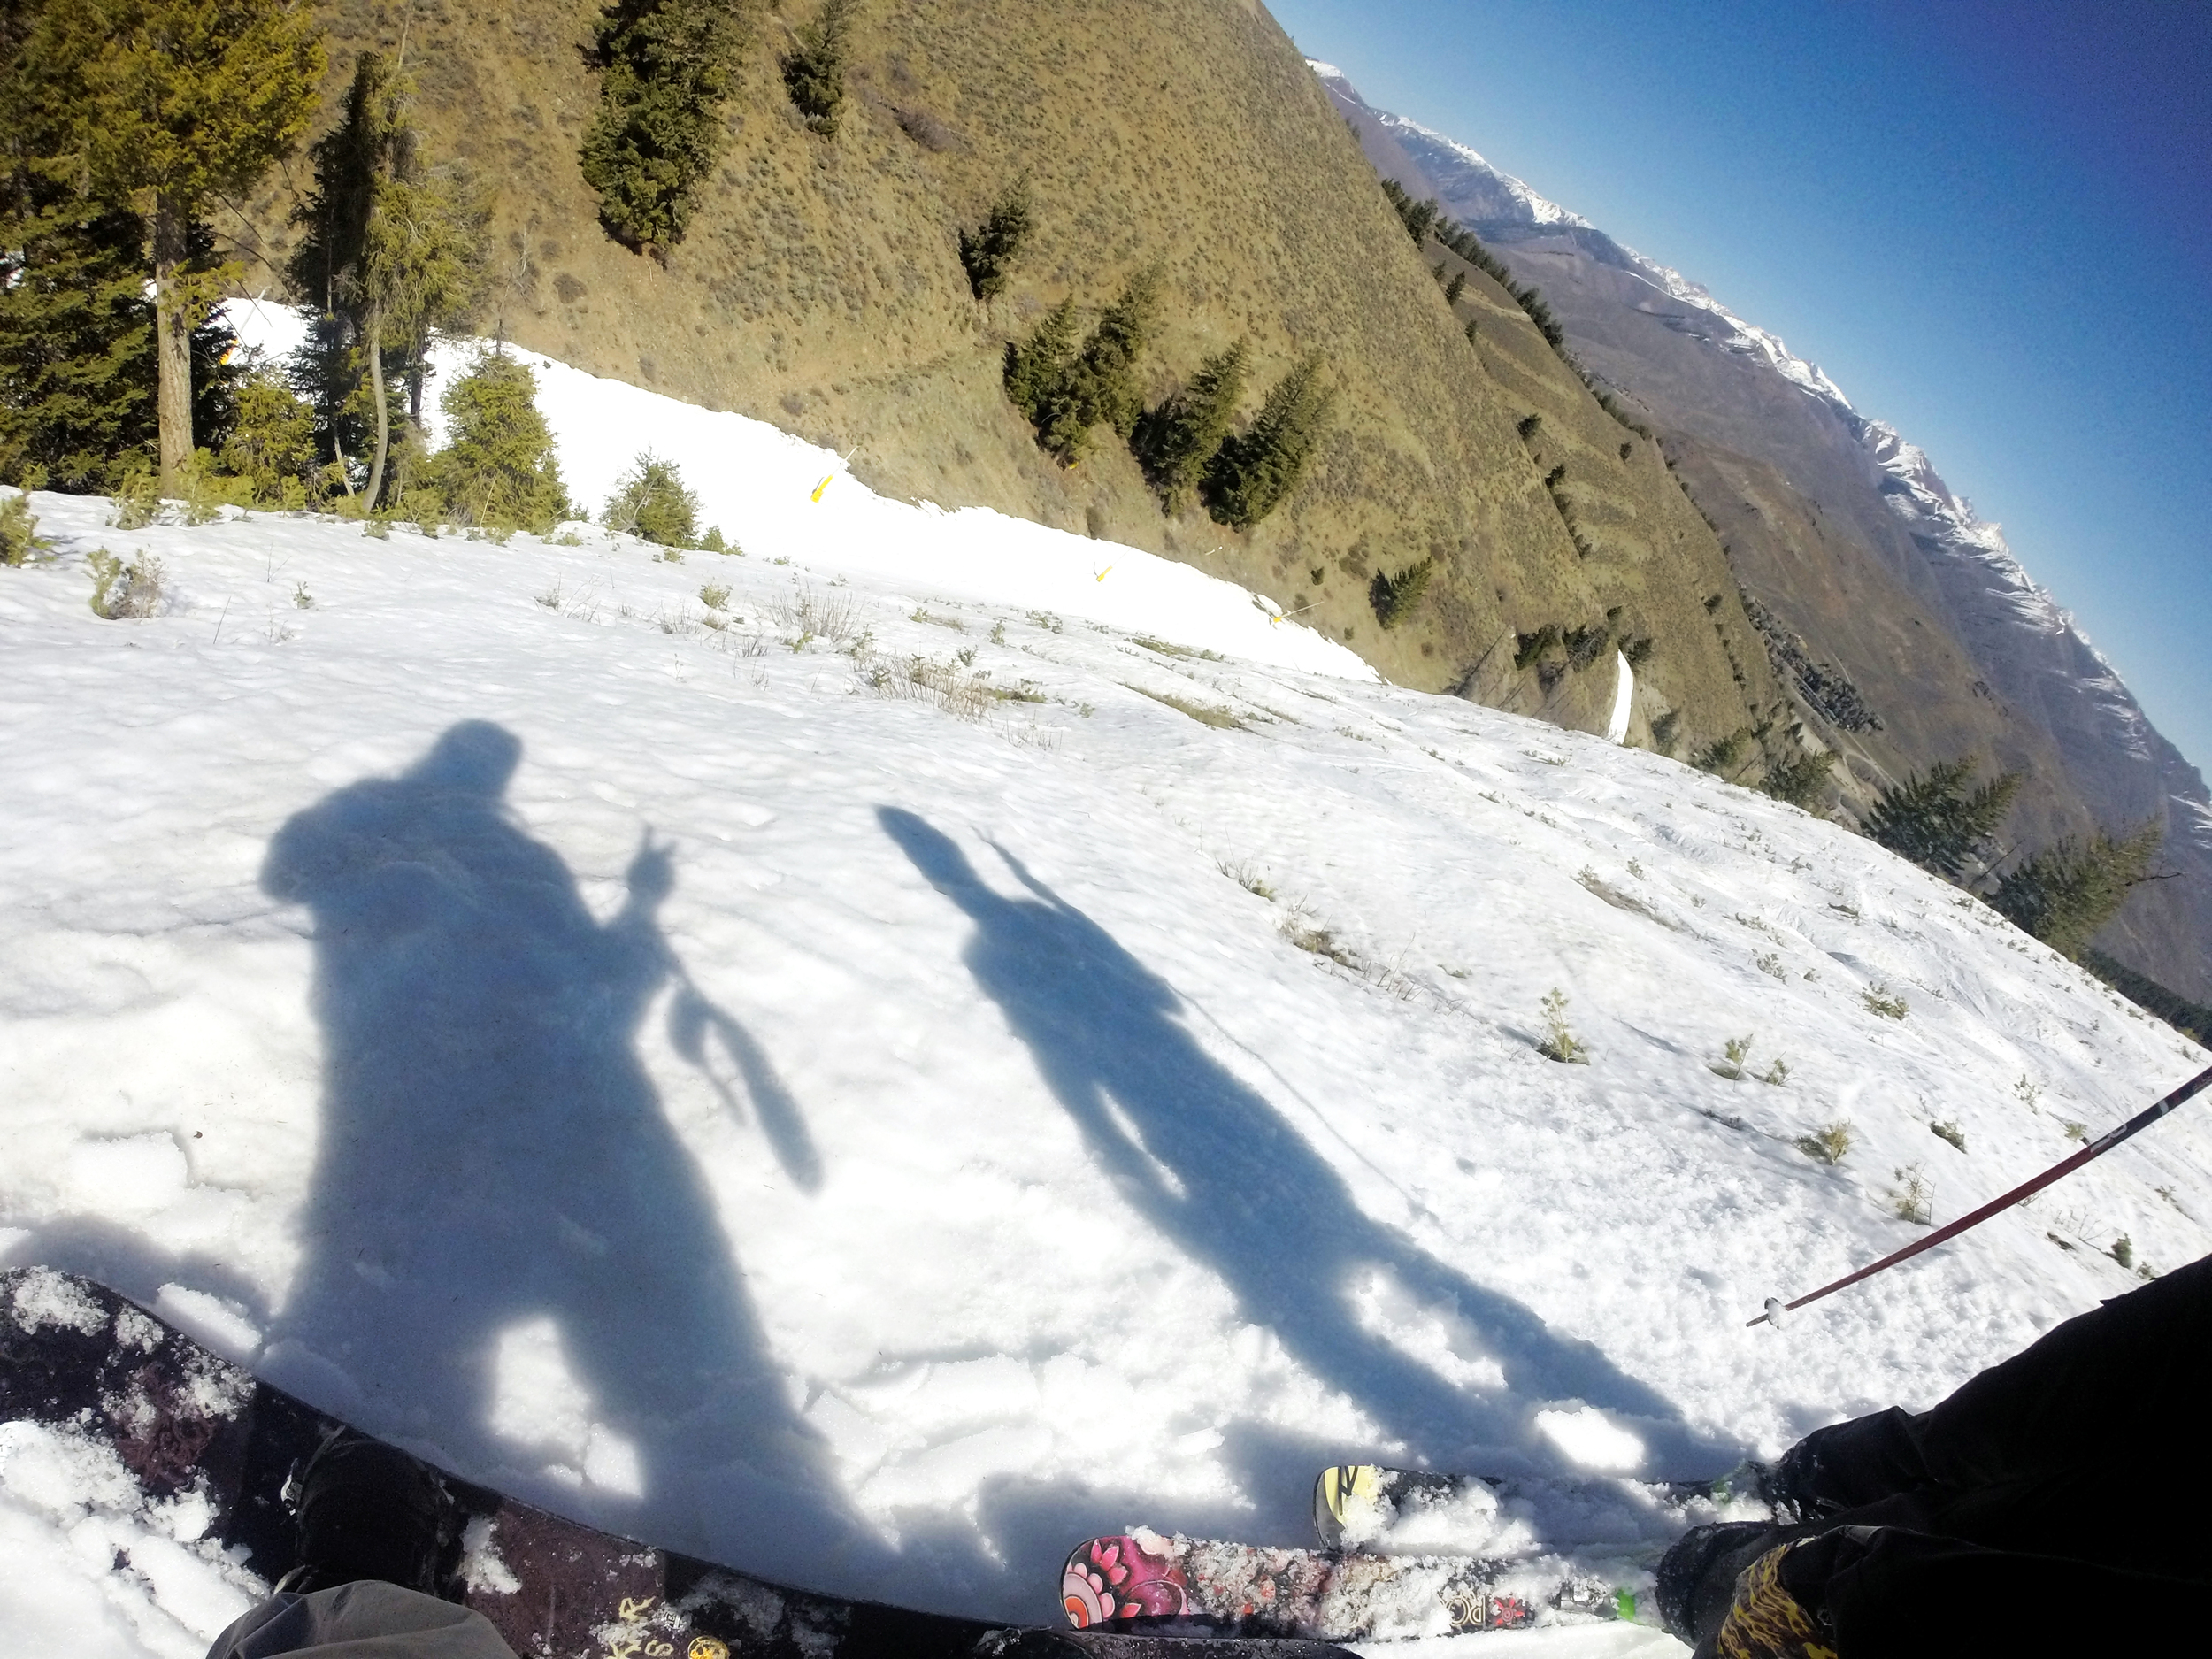 the samoan and el squat putting on their shadow puppet show on Holiday (Sun Valley 4/15)